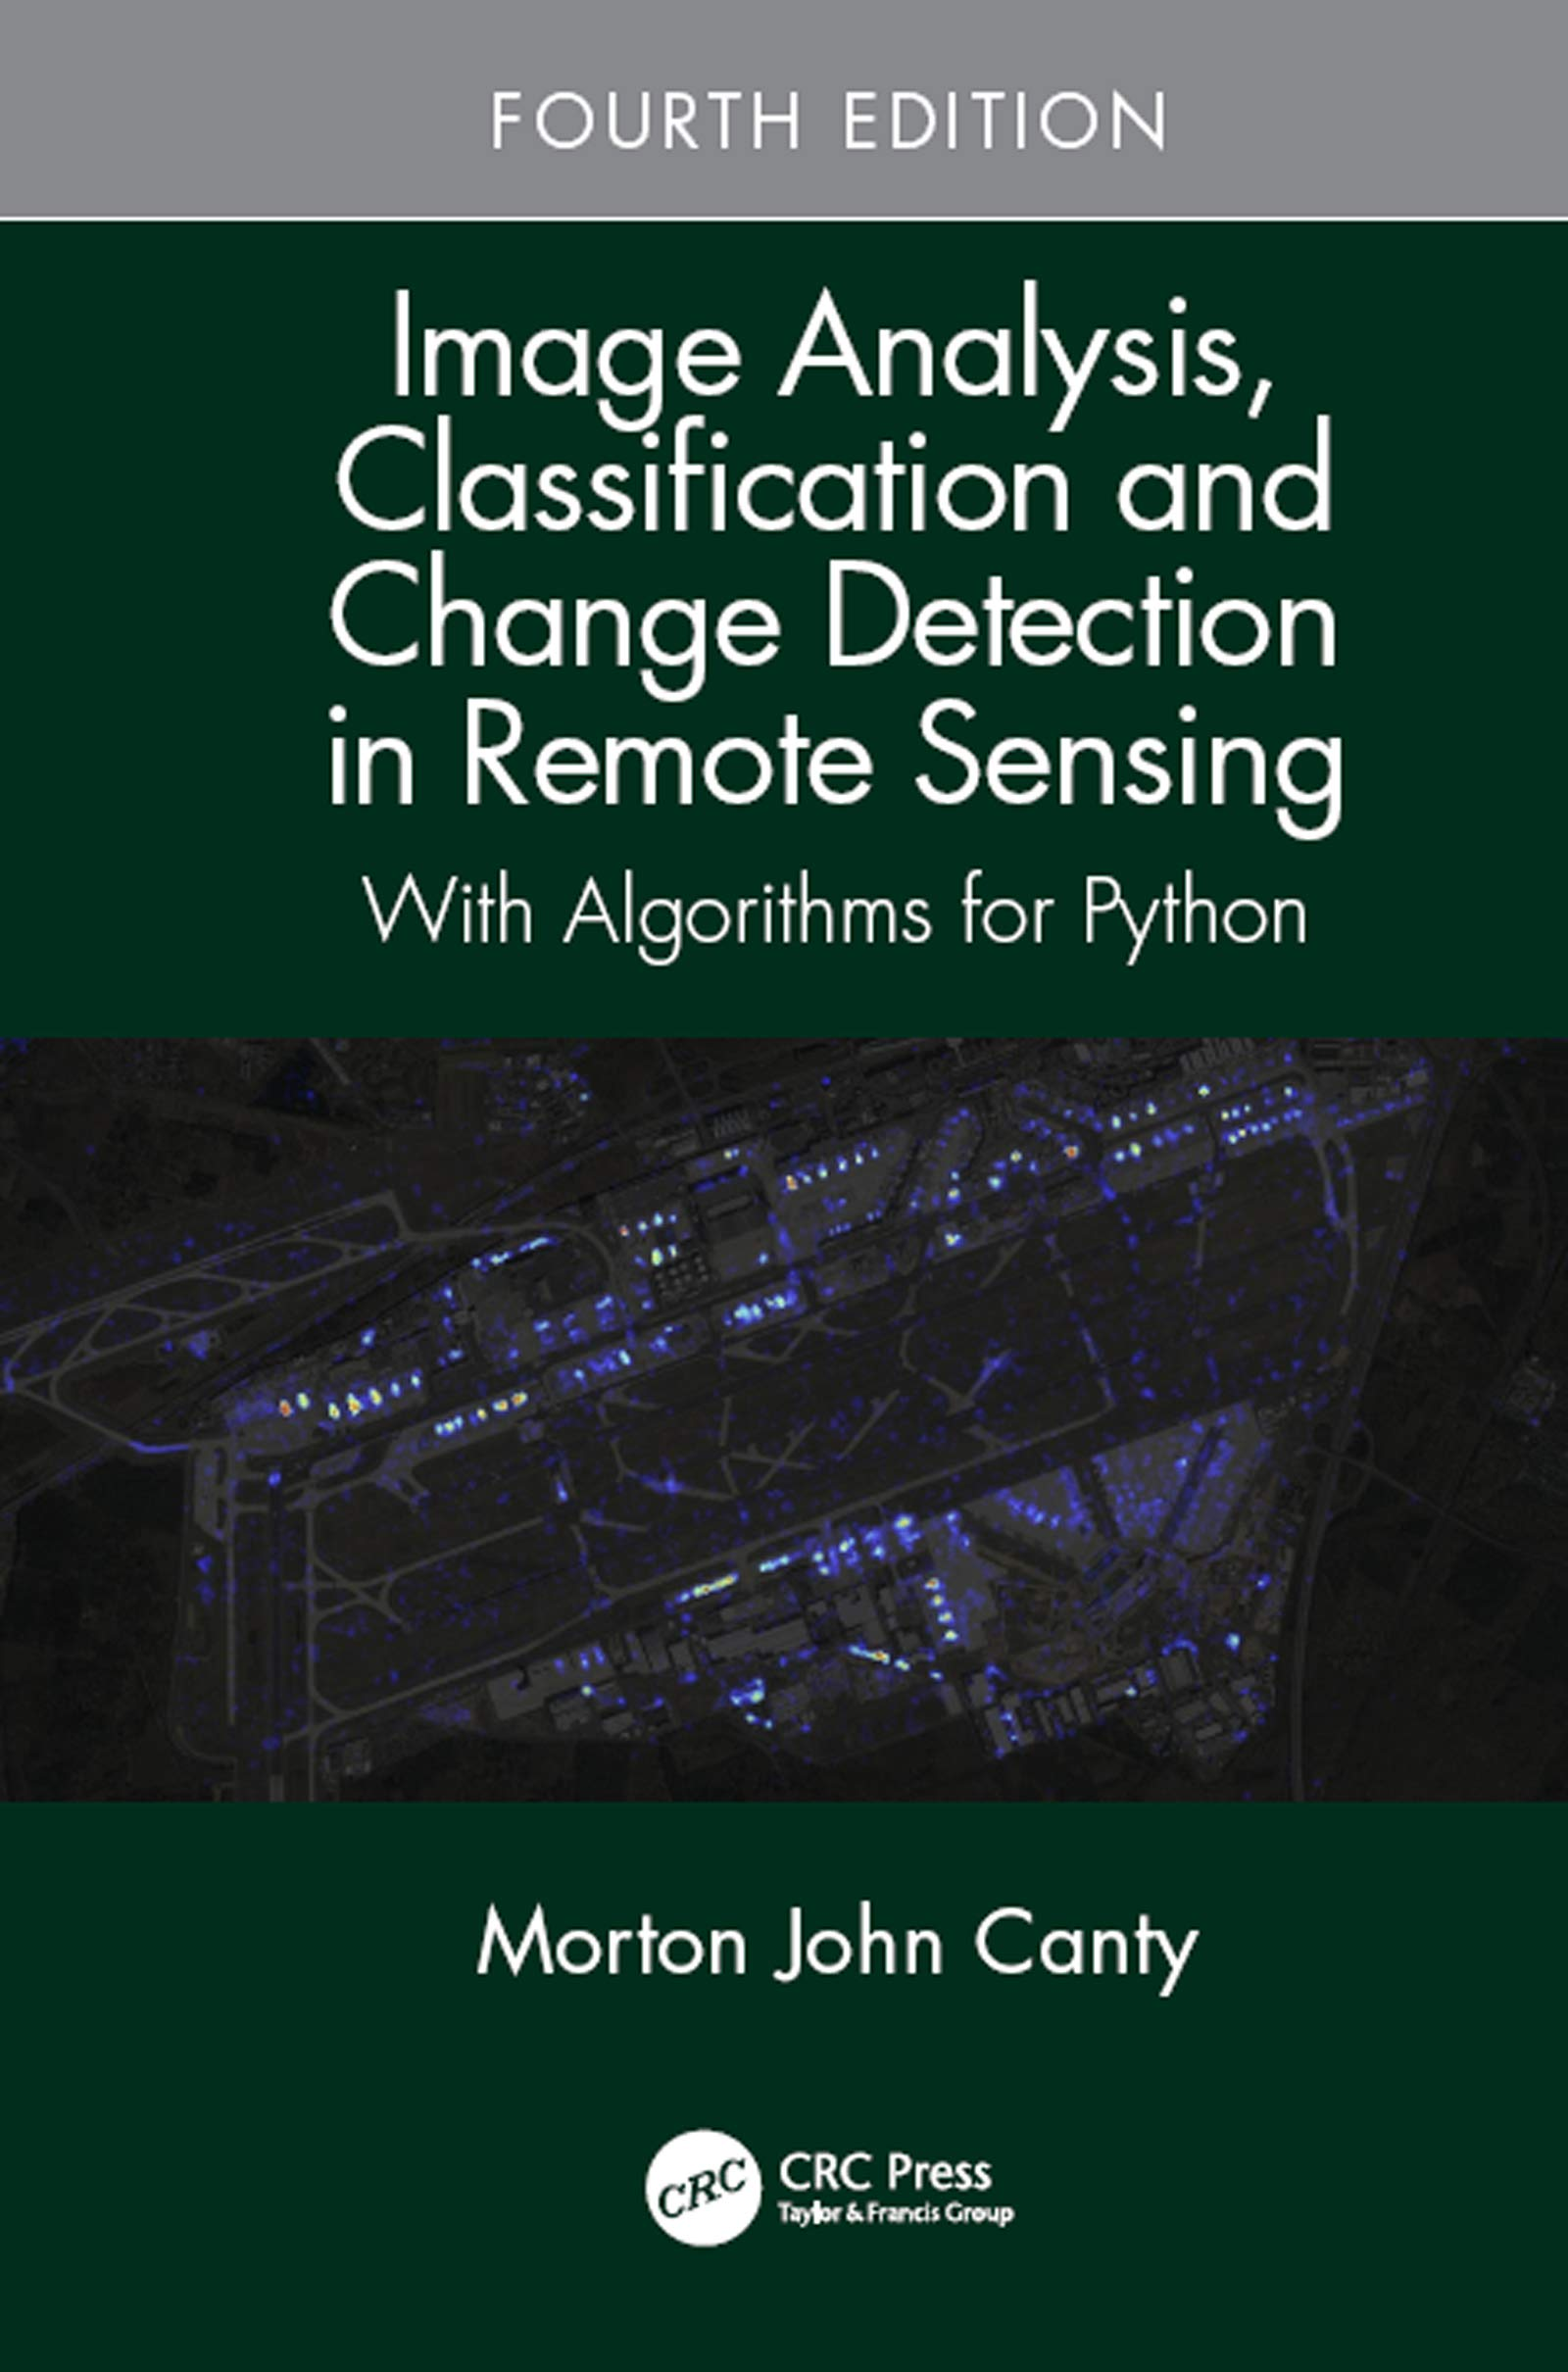 Image Analysis, Classification and Change Detection in Remote Sensing: With Algorithms for Python, Fourth Edition por Morton John Canty